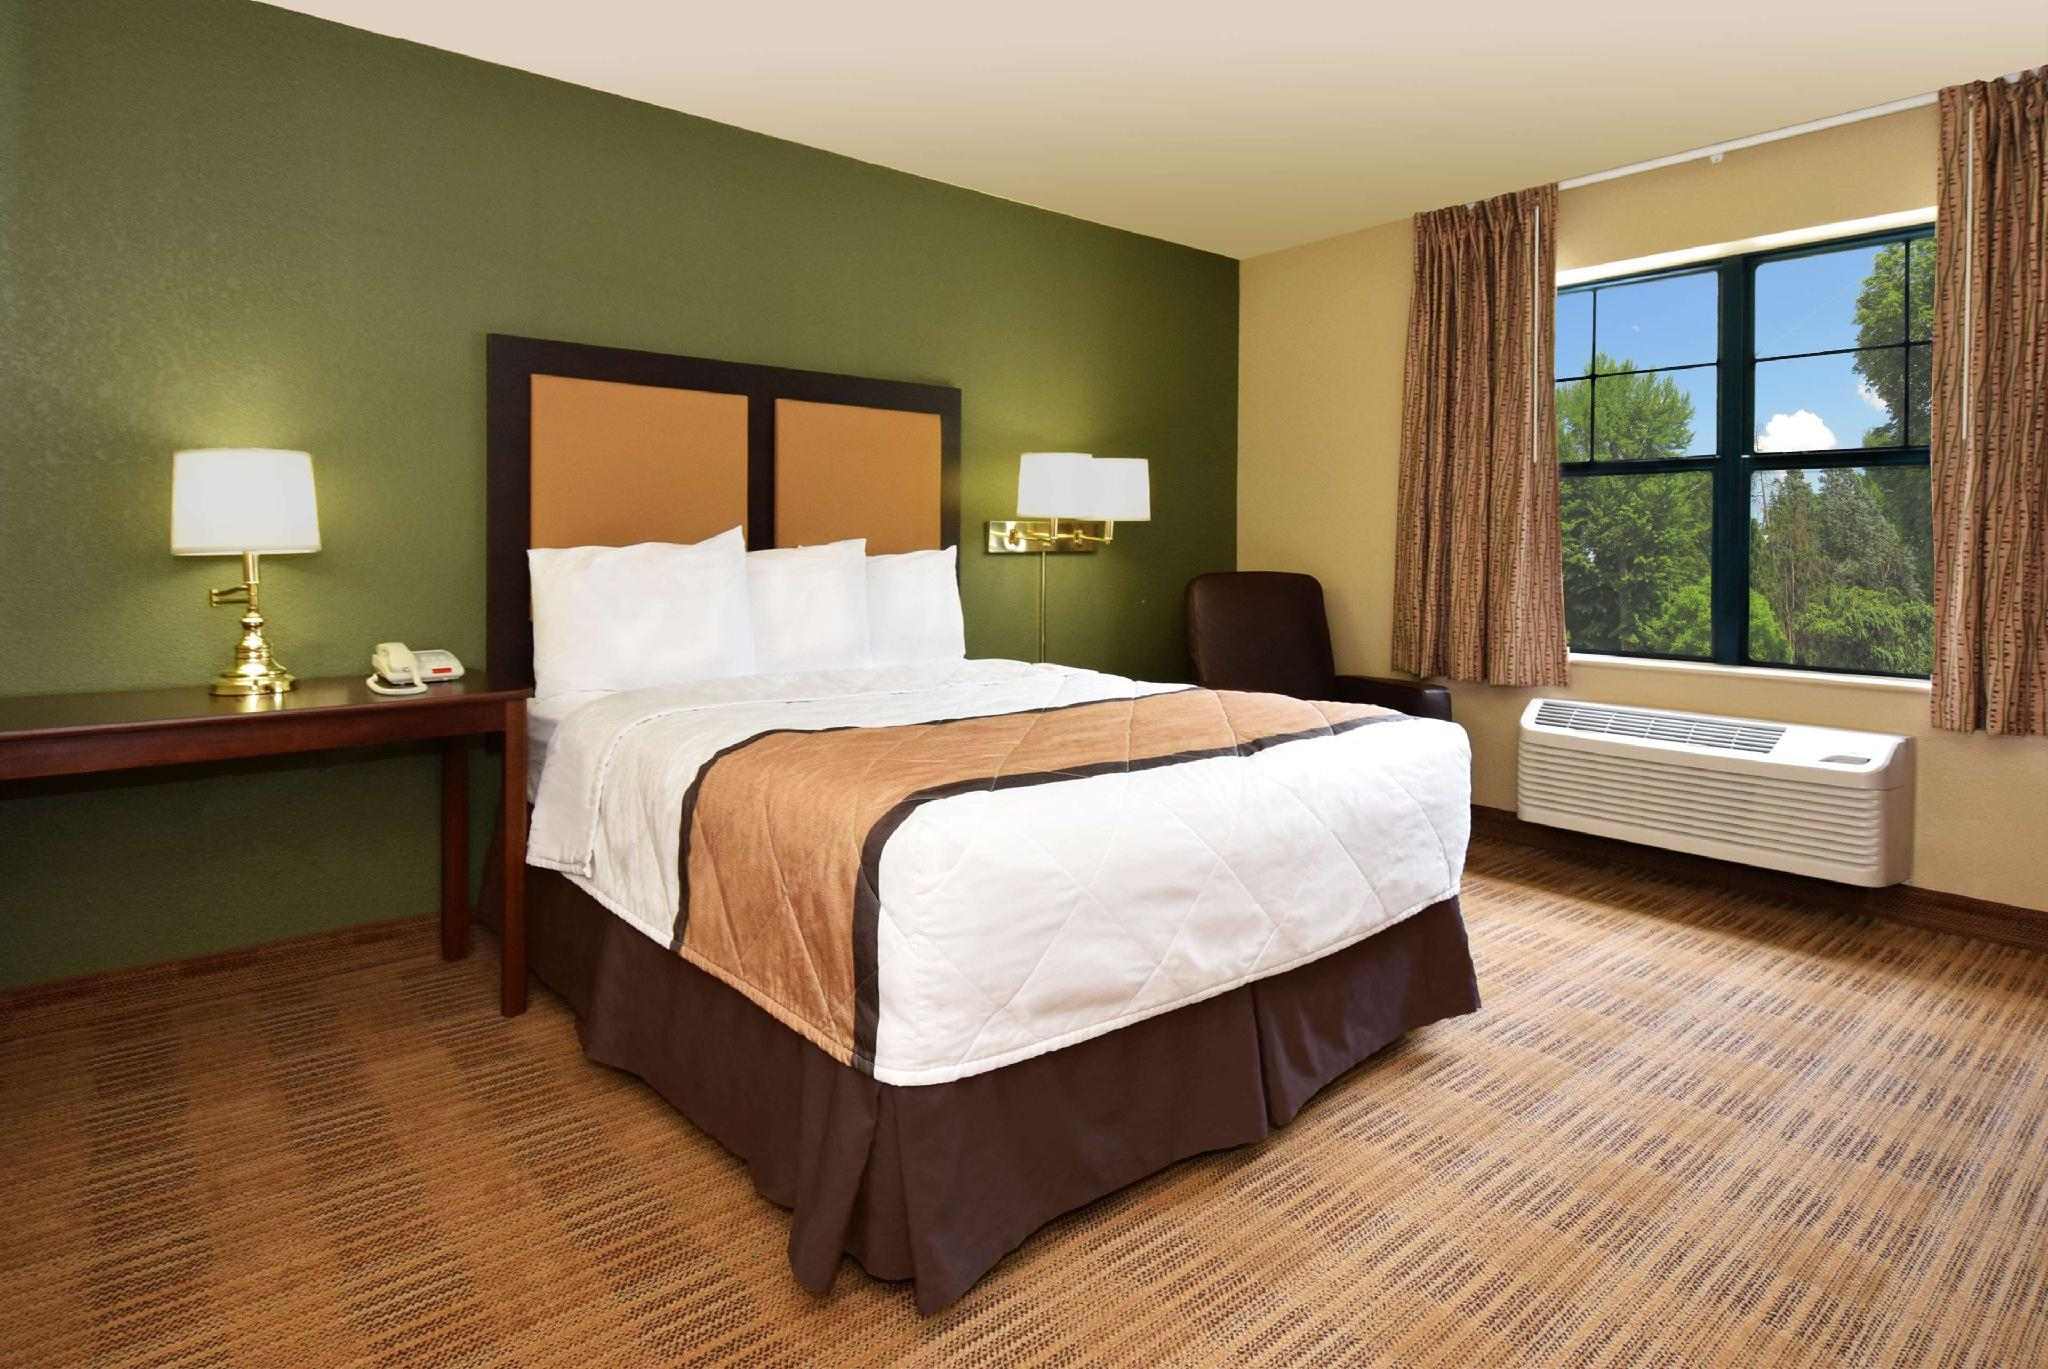 Extended Stay America - Seattle - Bellevue - Downtown, King